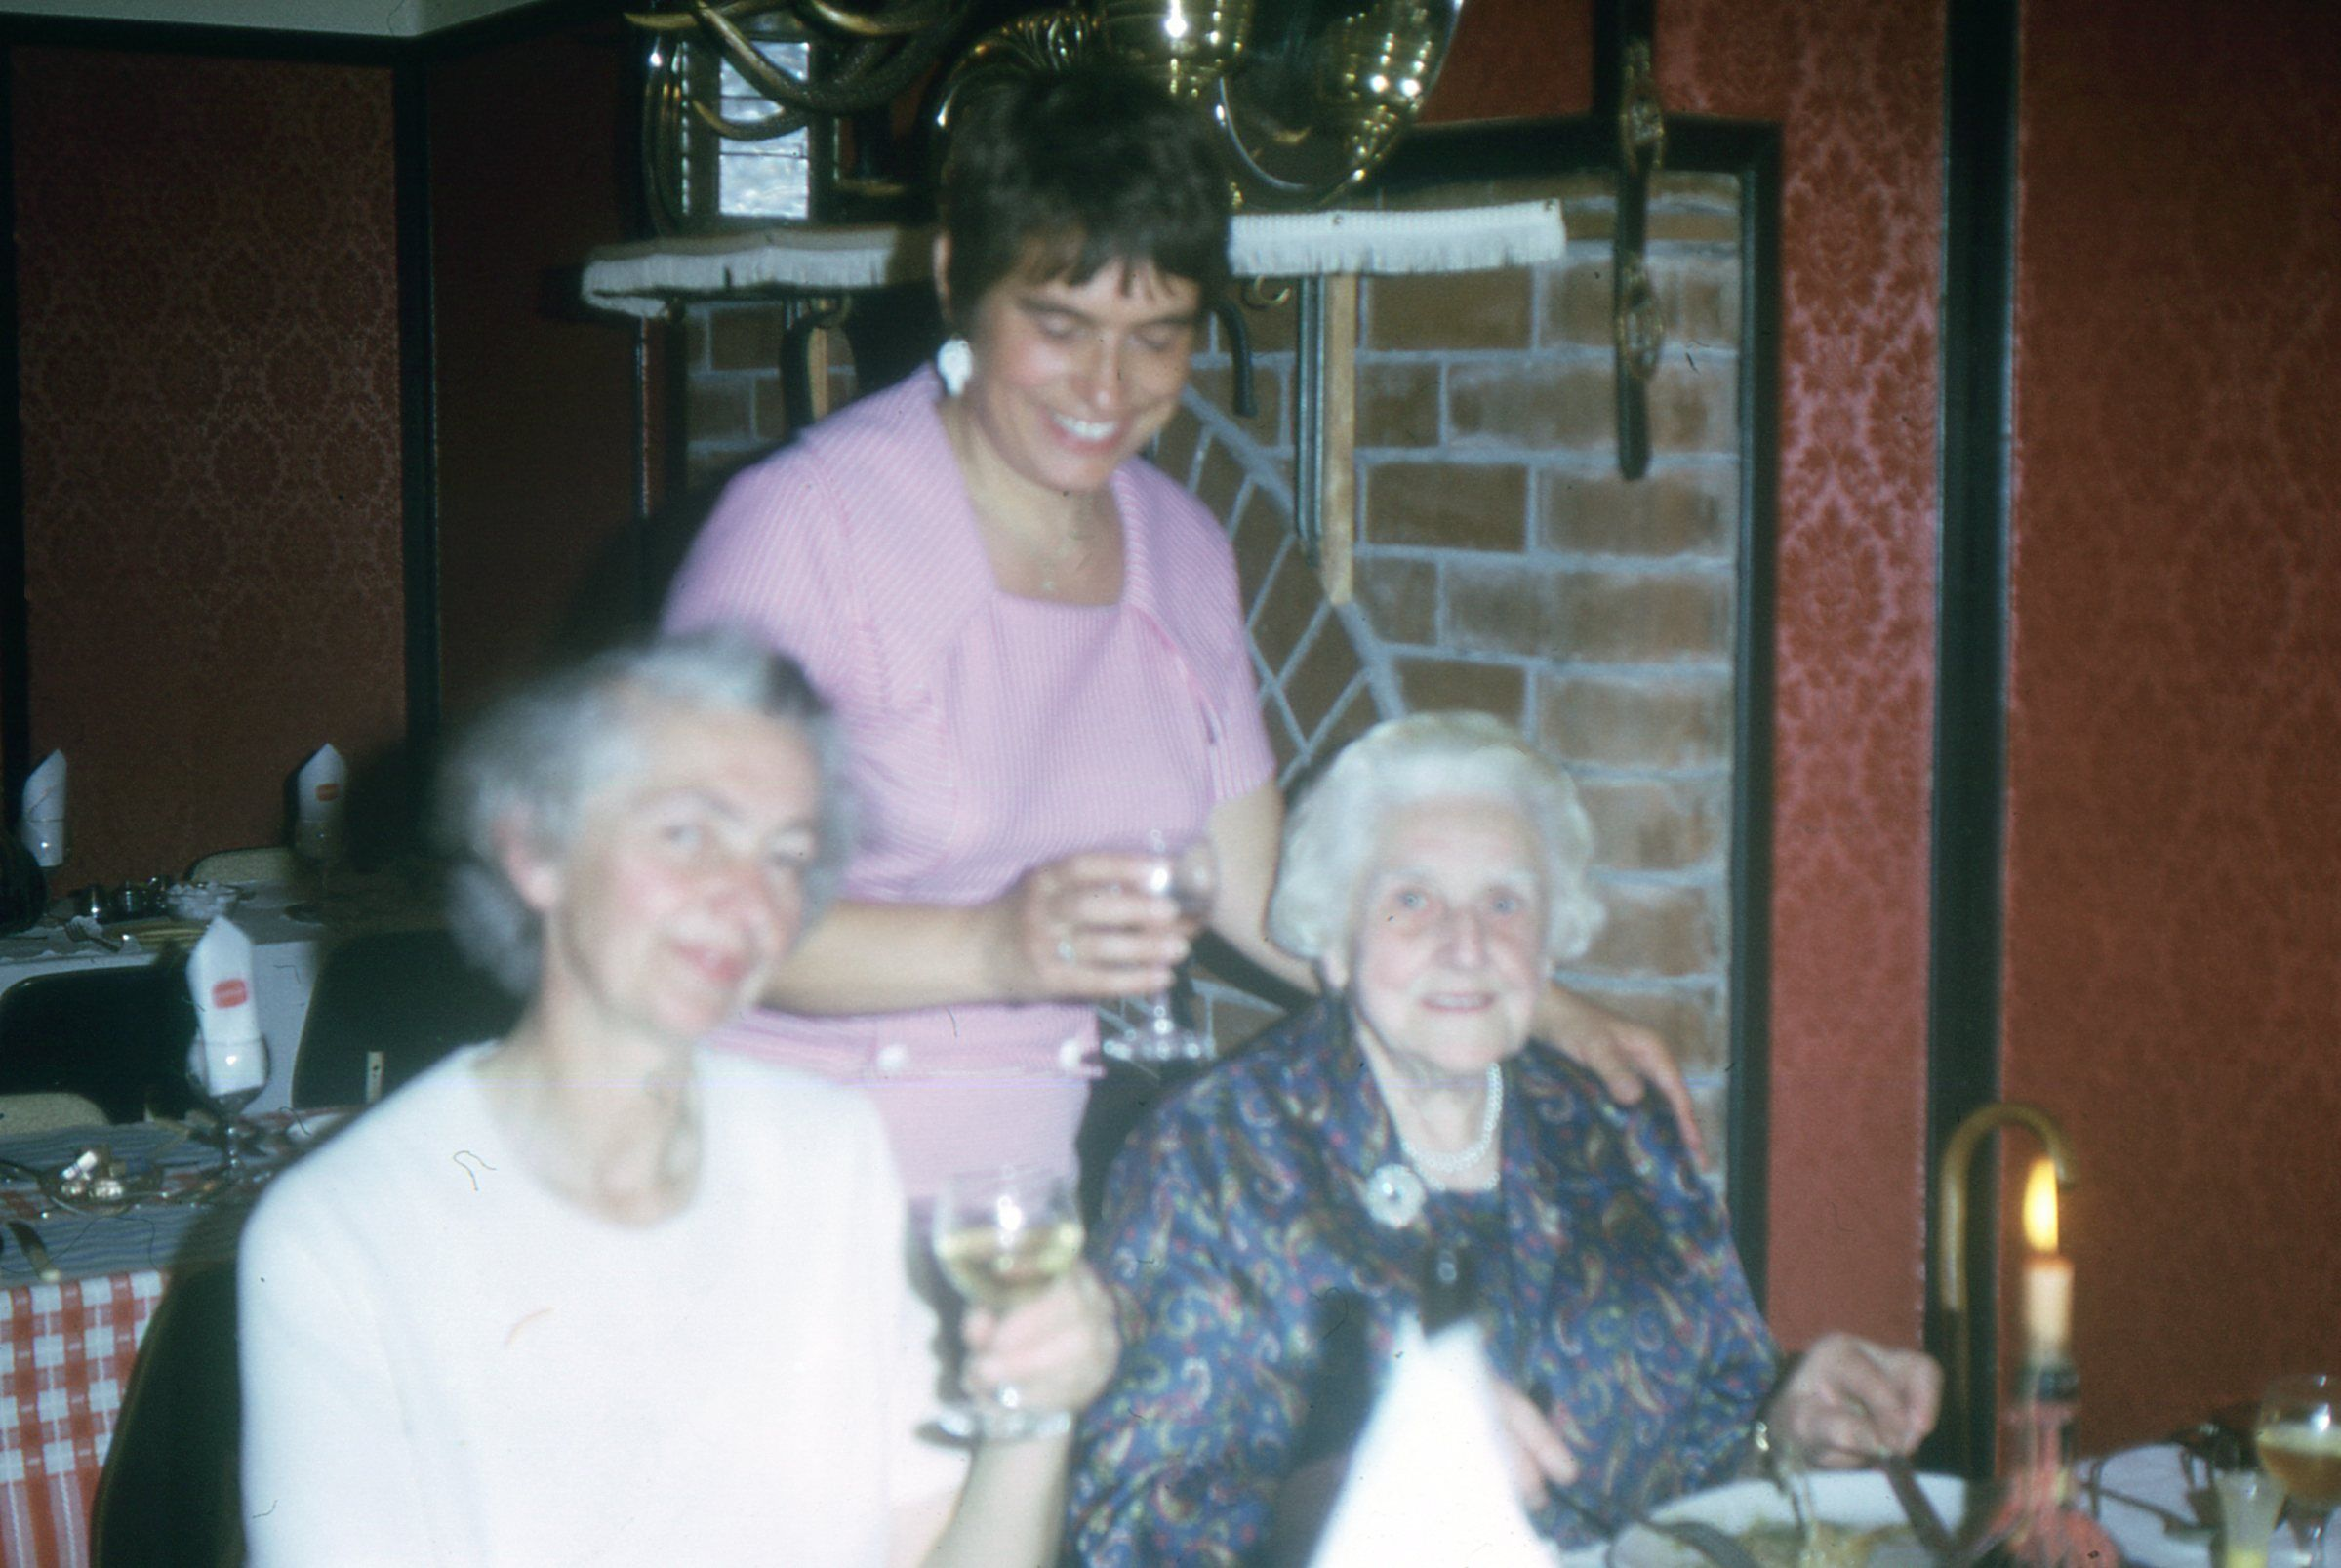 """pic 58. Trip to England with Hubby Derek.  In an Englsh Pub with Derek's sister, Muriel on the left, Hannelies in the middle and """"Mother"""" on the right.  I am sure Derek is behind the camera.  1973.  Her Age: 46"""